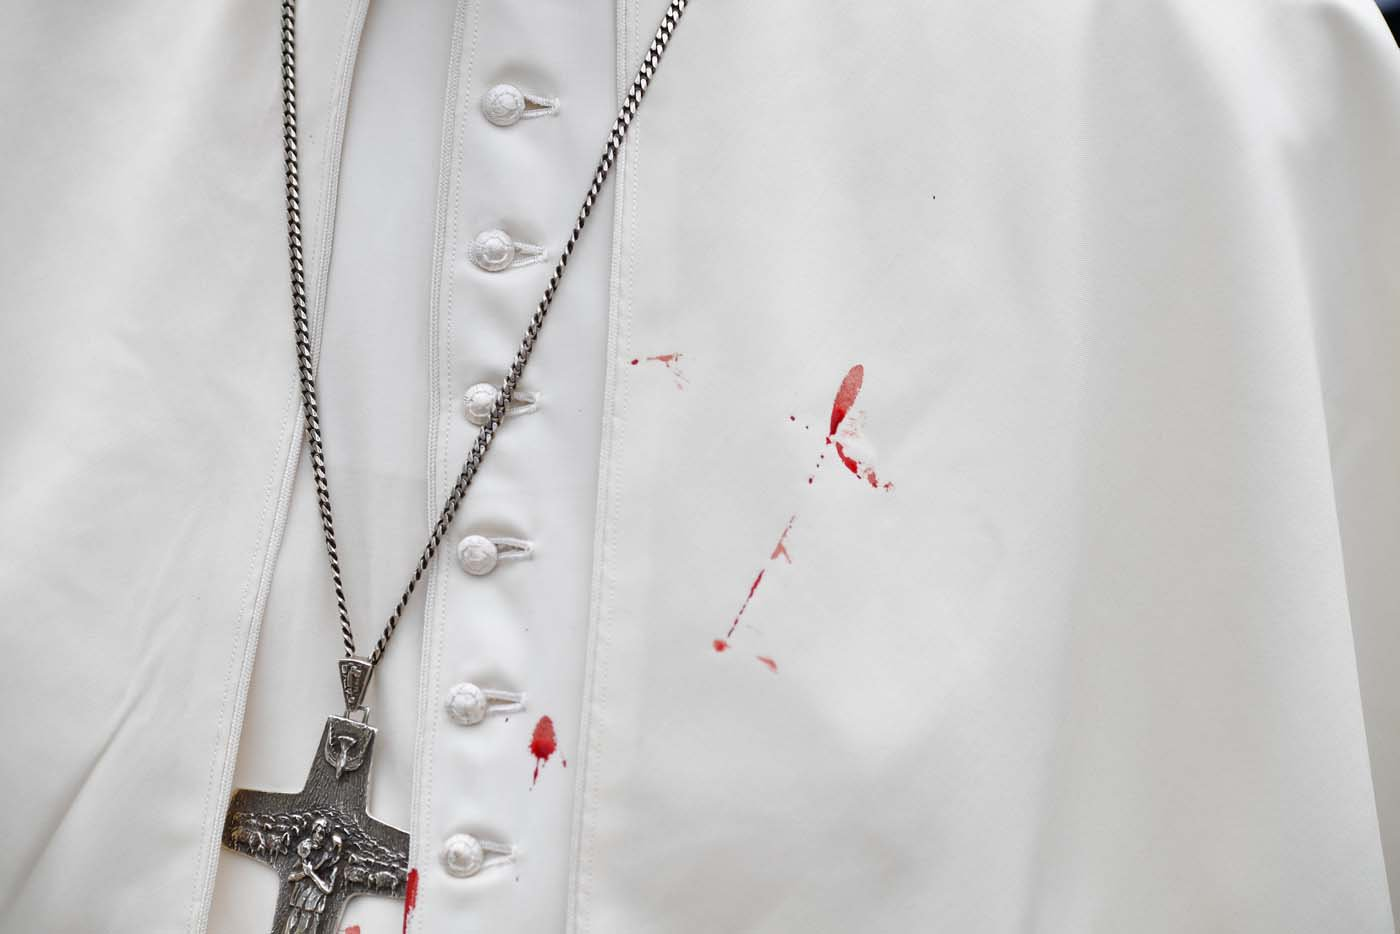 A few droplets of blood stain Pope Francis